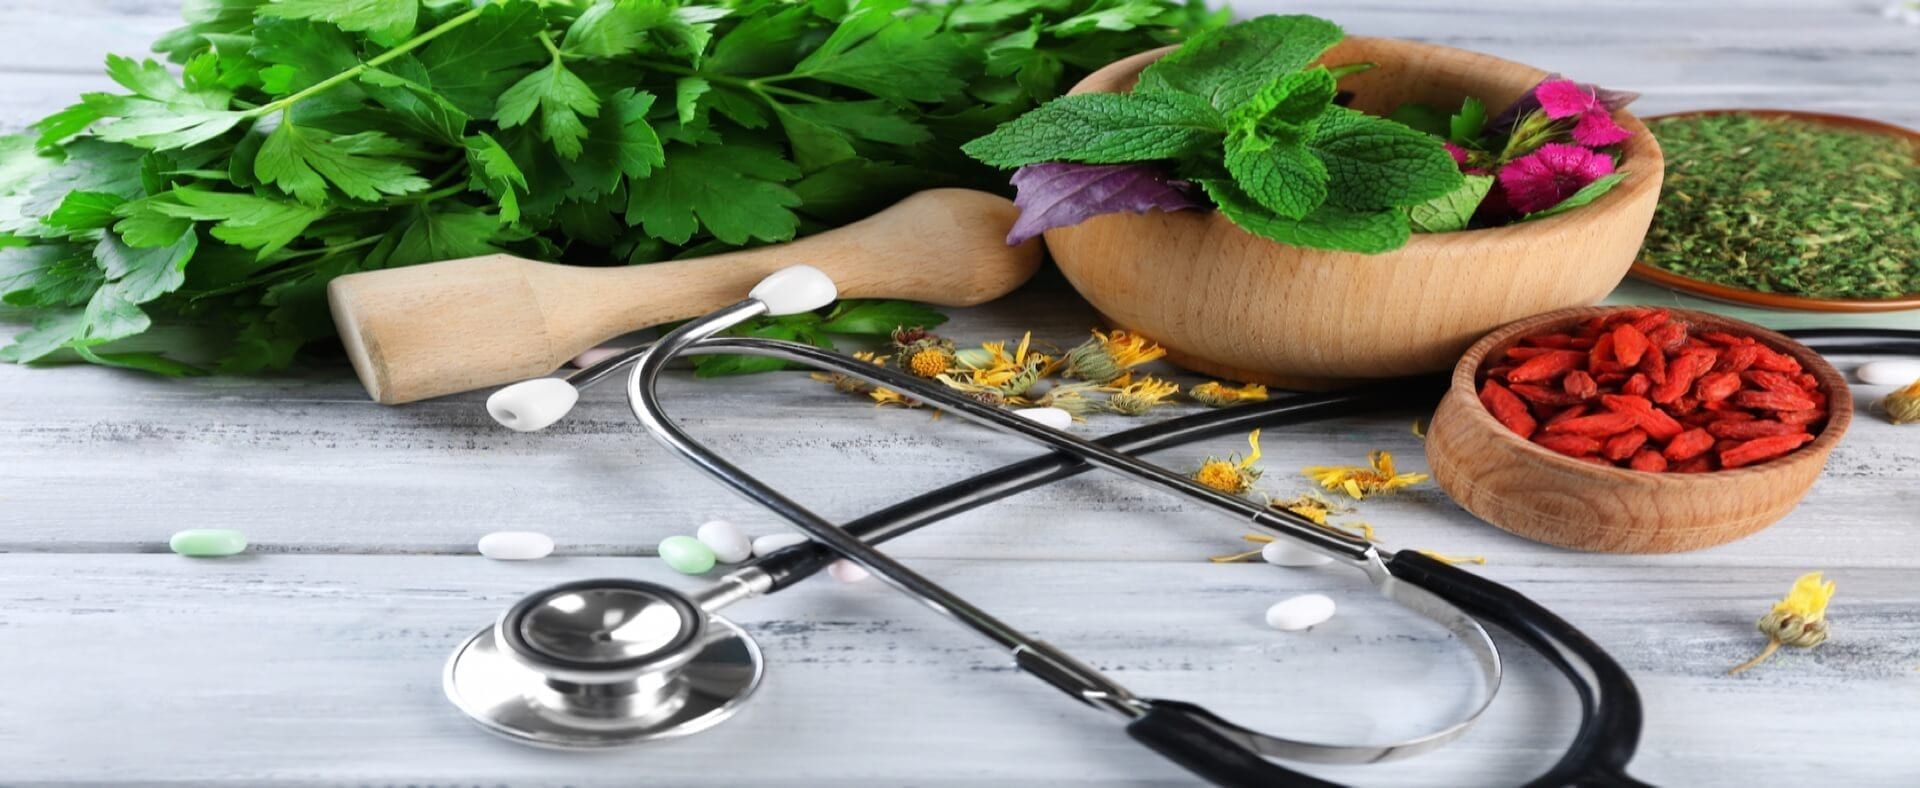 Naturopathic Fee Schedule | Dr. Jiwani Naturopathic Physician Vancouver Burnaby Surrey